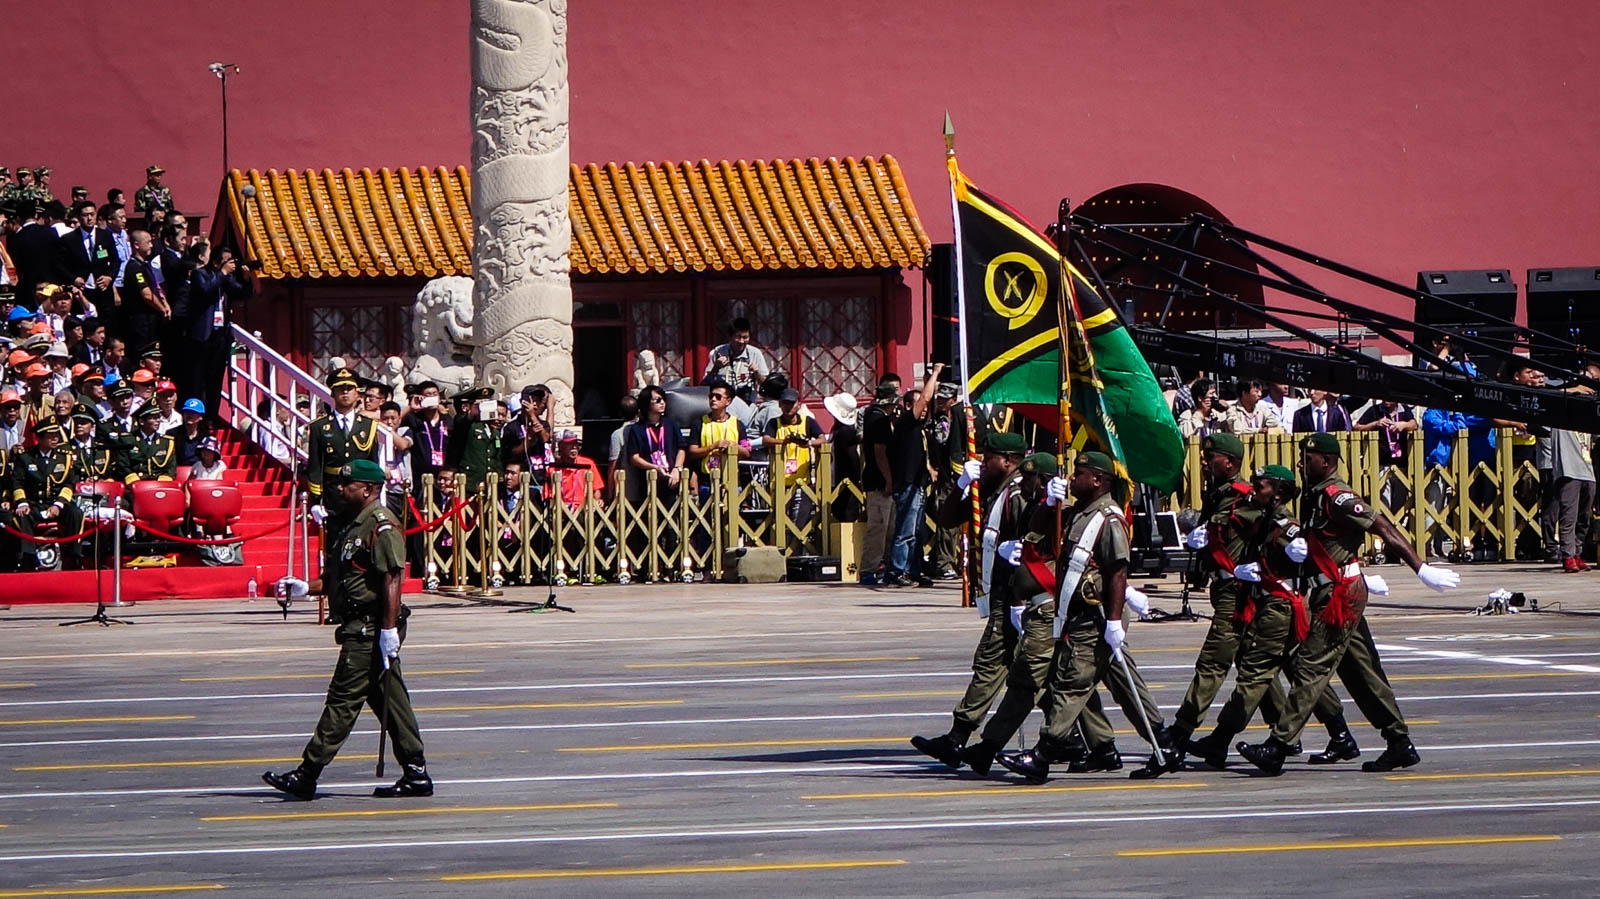 beijing-china-military-parade-2015-25